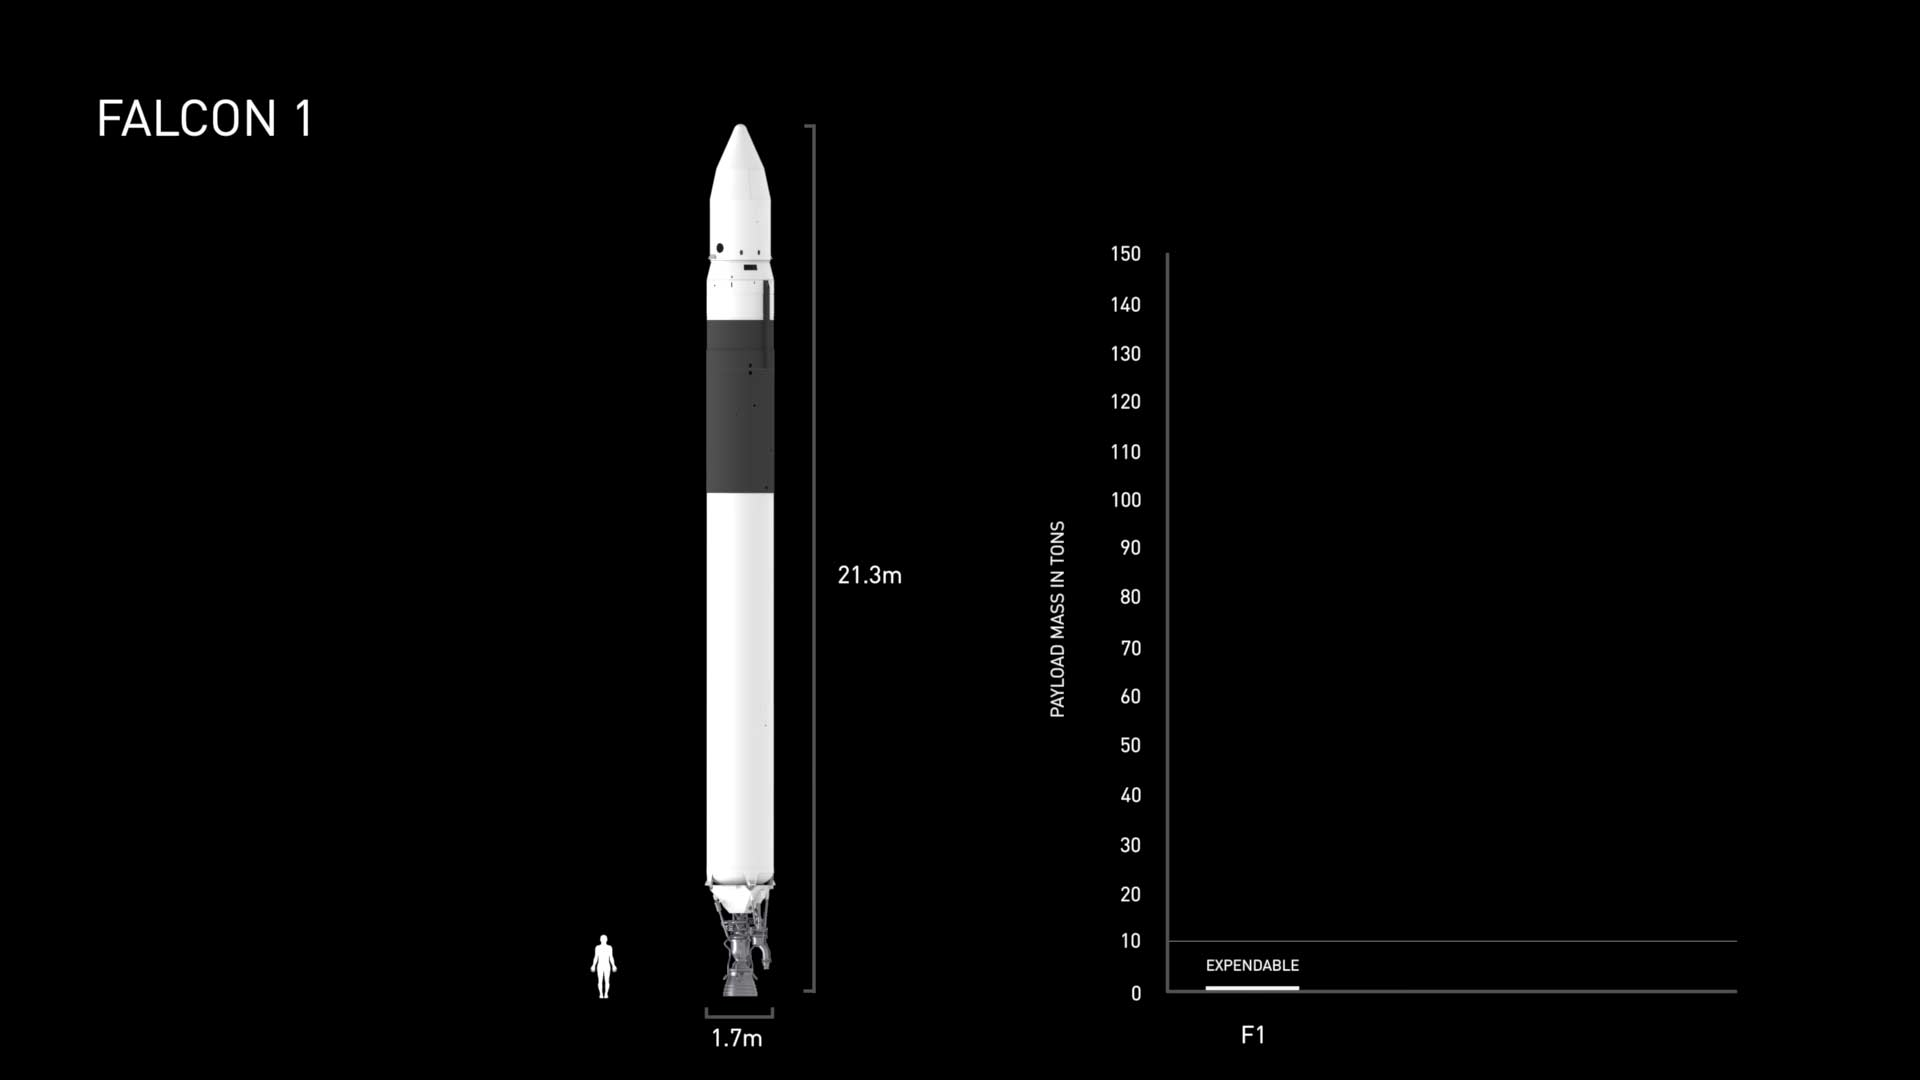 falcon 9 first launched on june 4th 2010 the initial version was disposable and reuse was developed over time after learning how to achieve landing